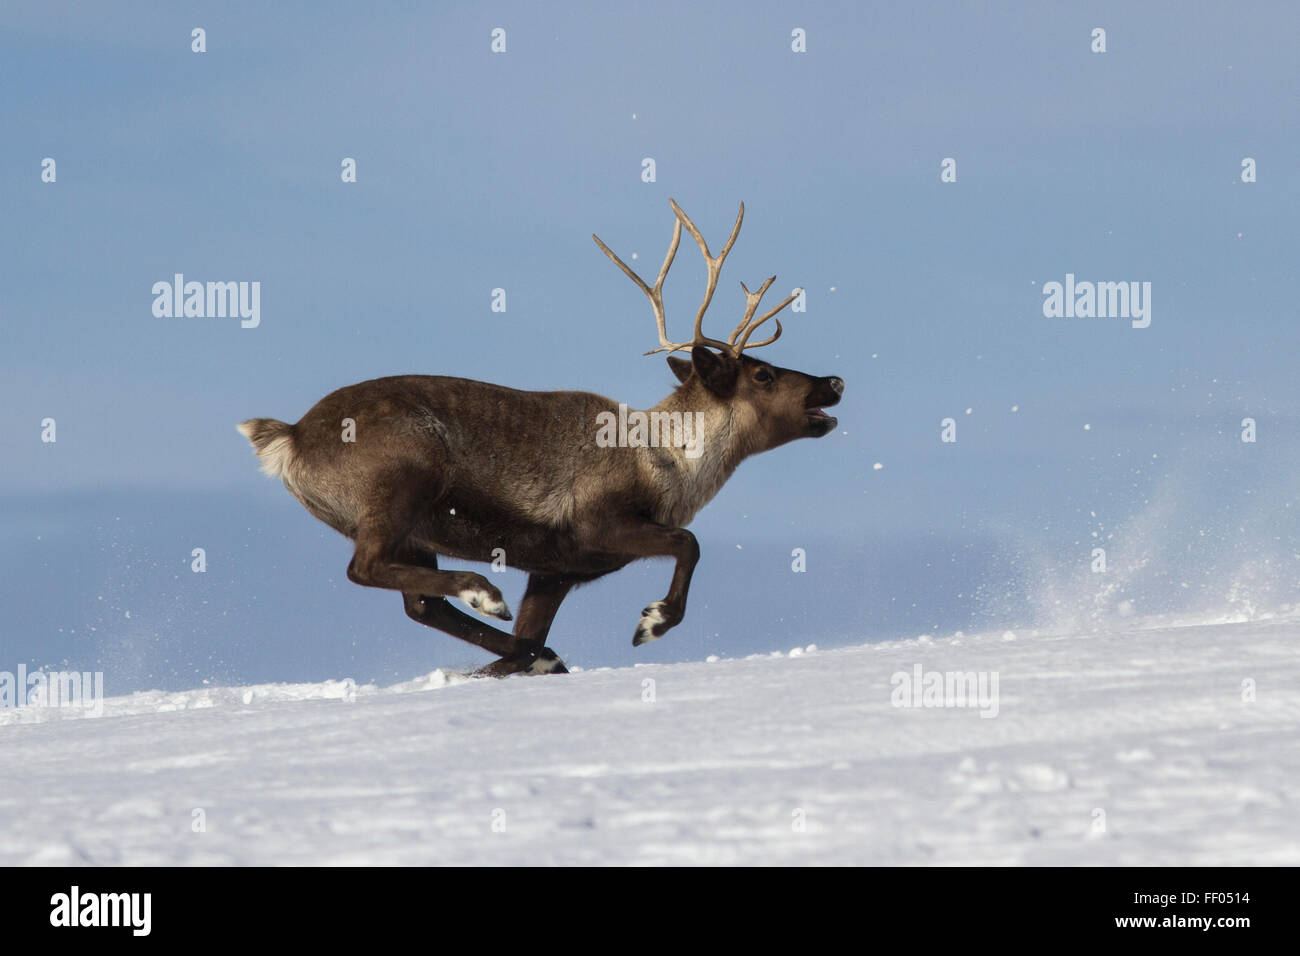 Reindeer which runs on snow-covered tundra Bering Island - Stock Image